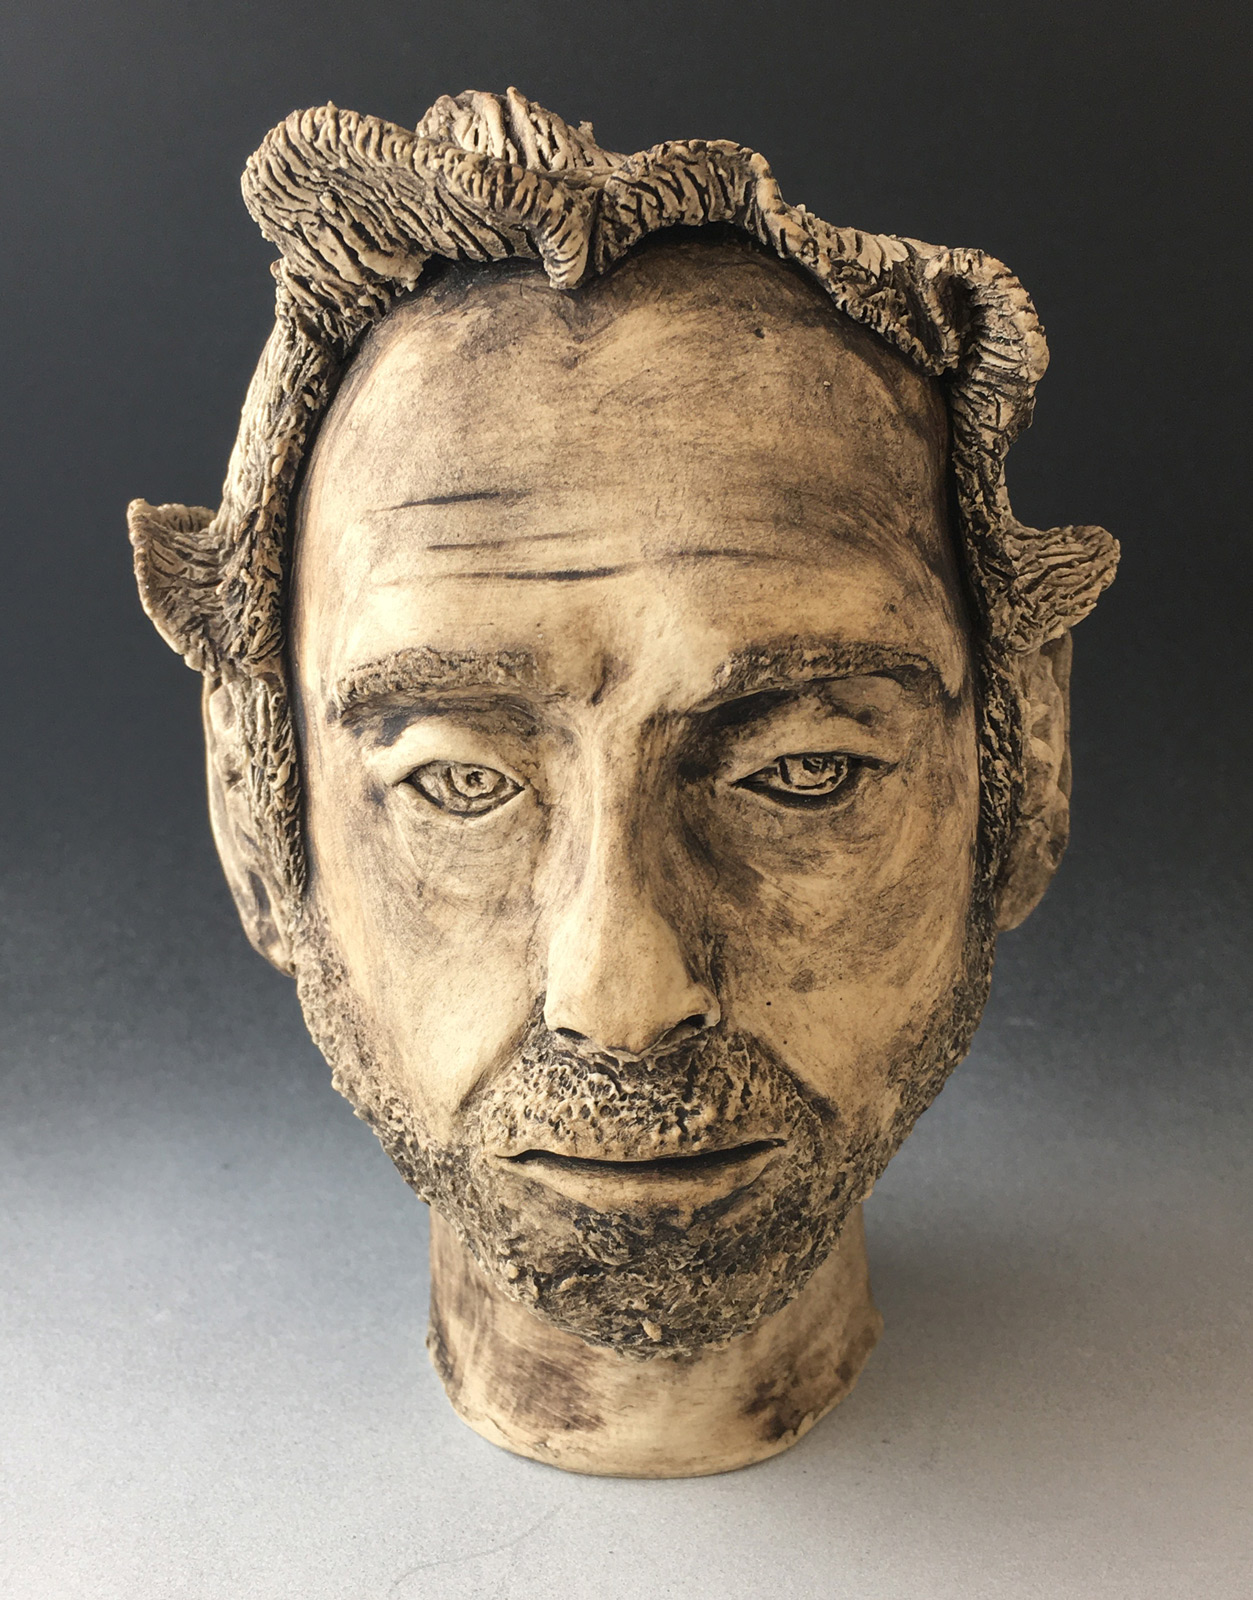 Ceramic head by SVC ceramics student